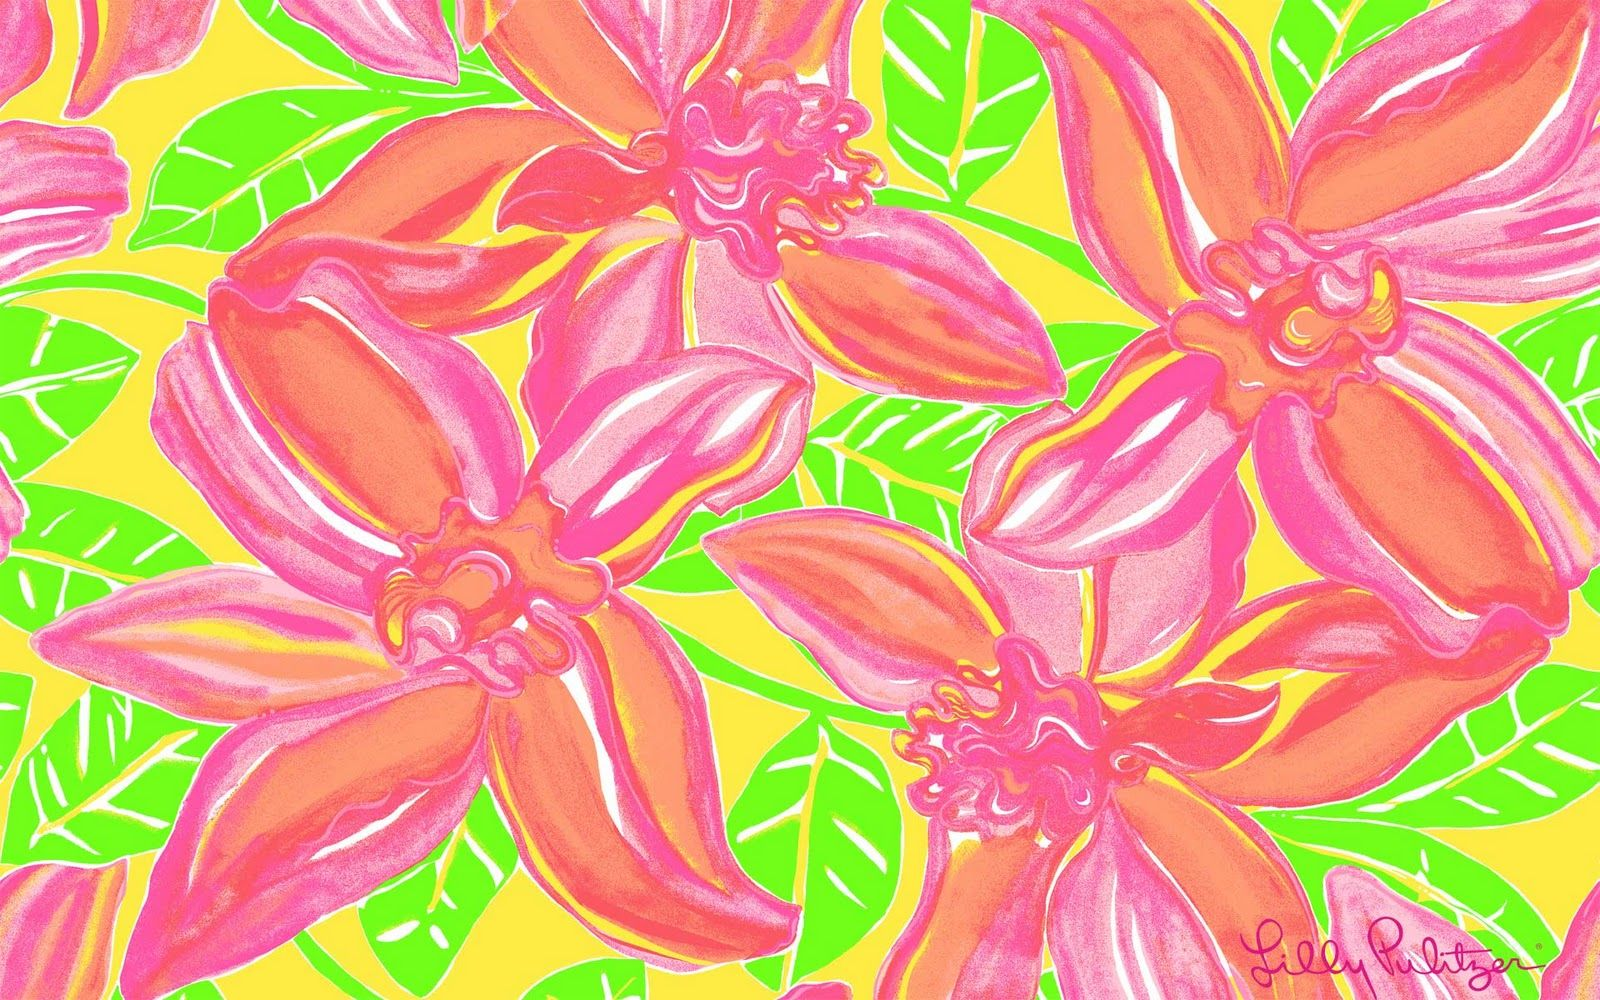 Lilly Pulitzer Tropical Beauty Patterns We Love! Lilly